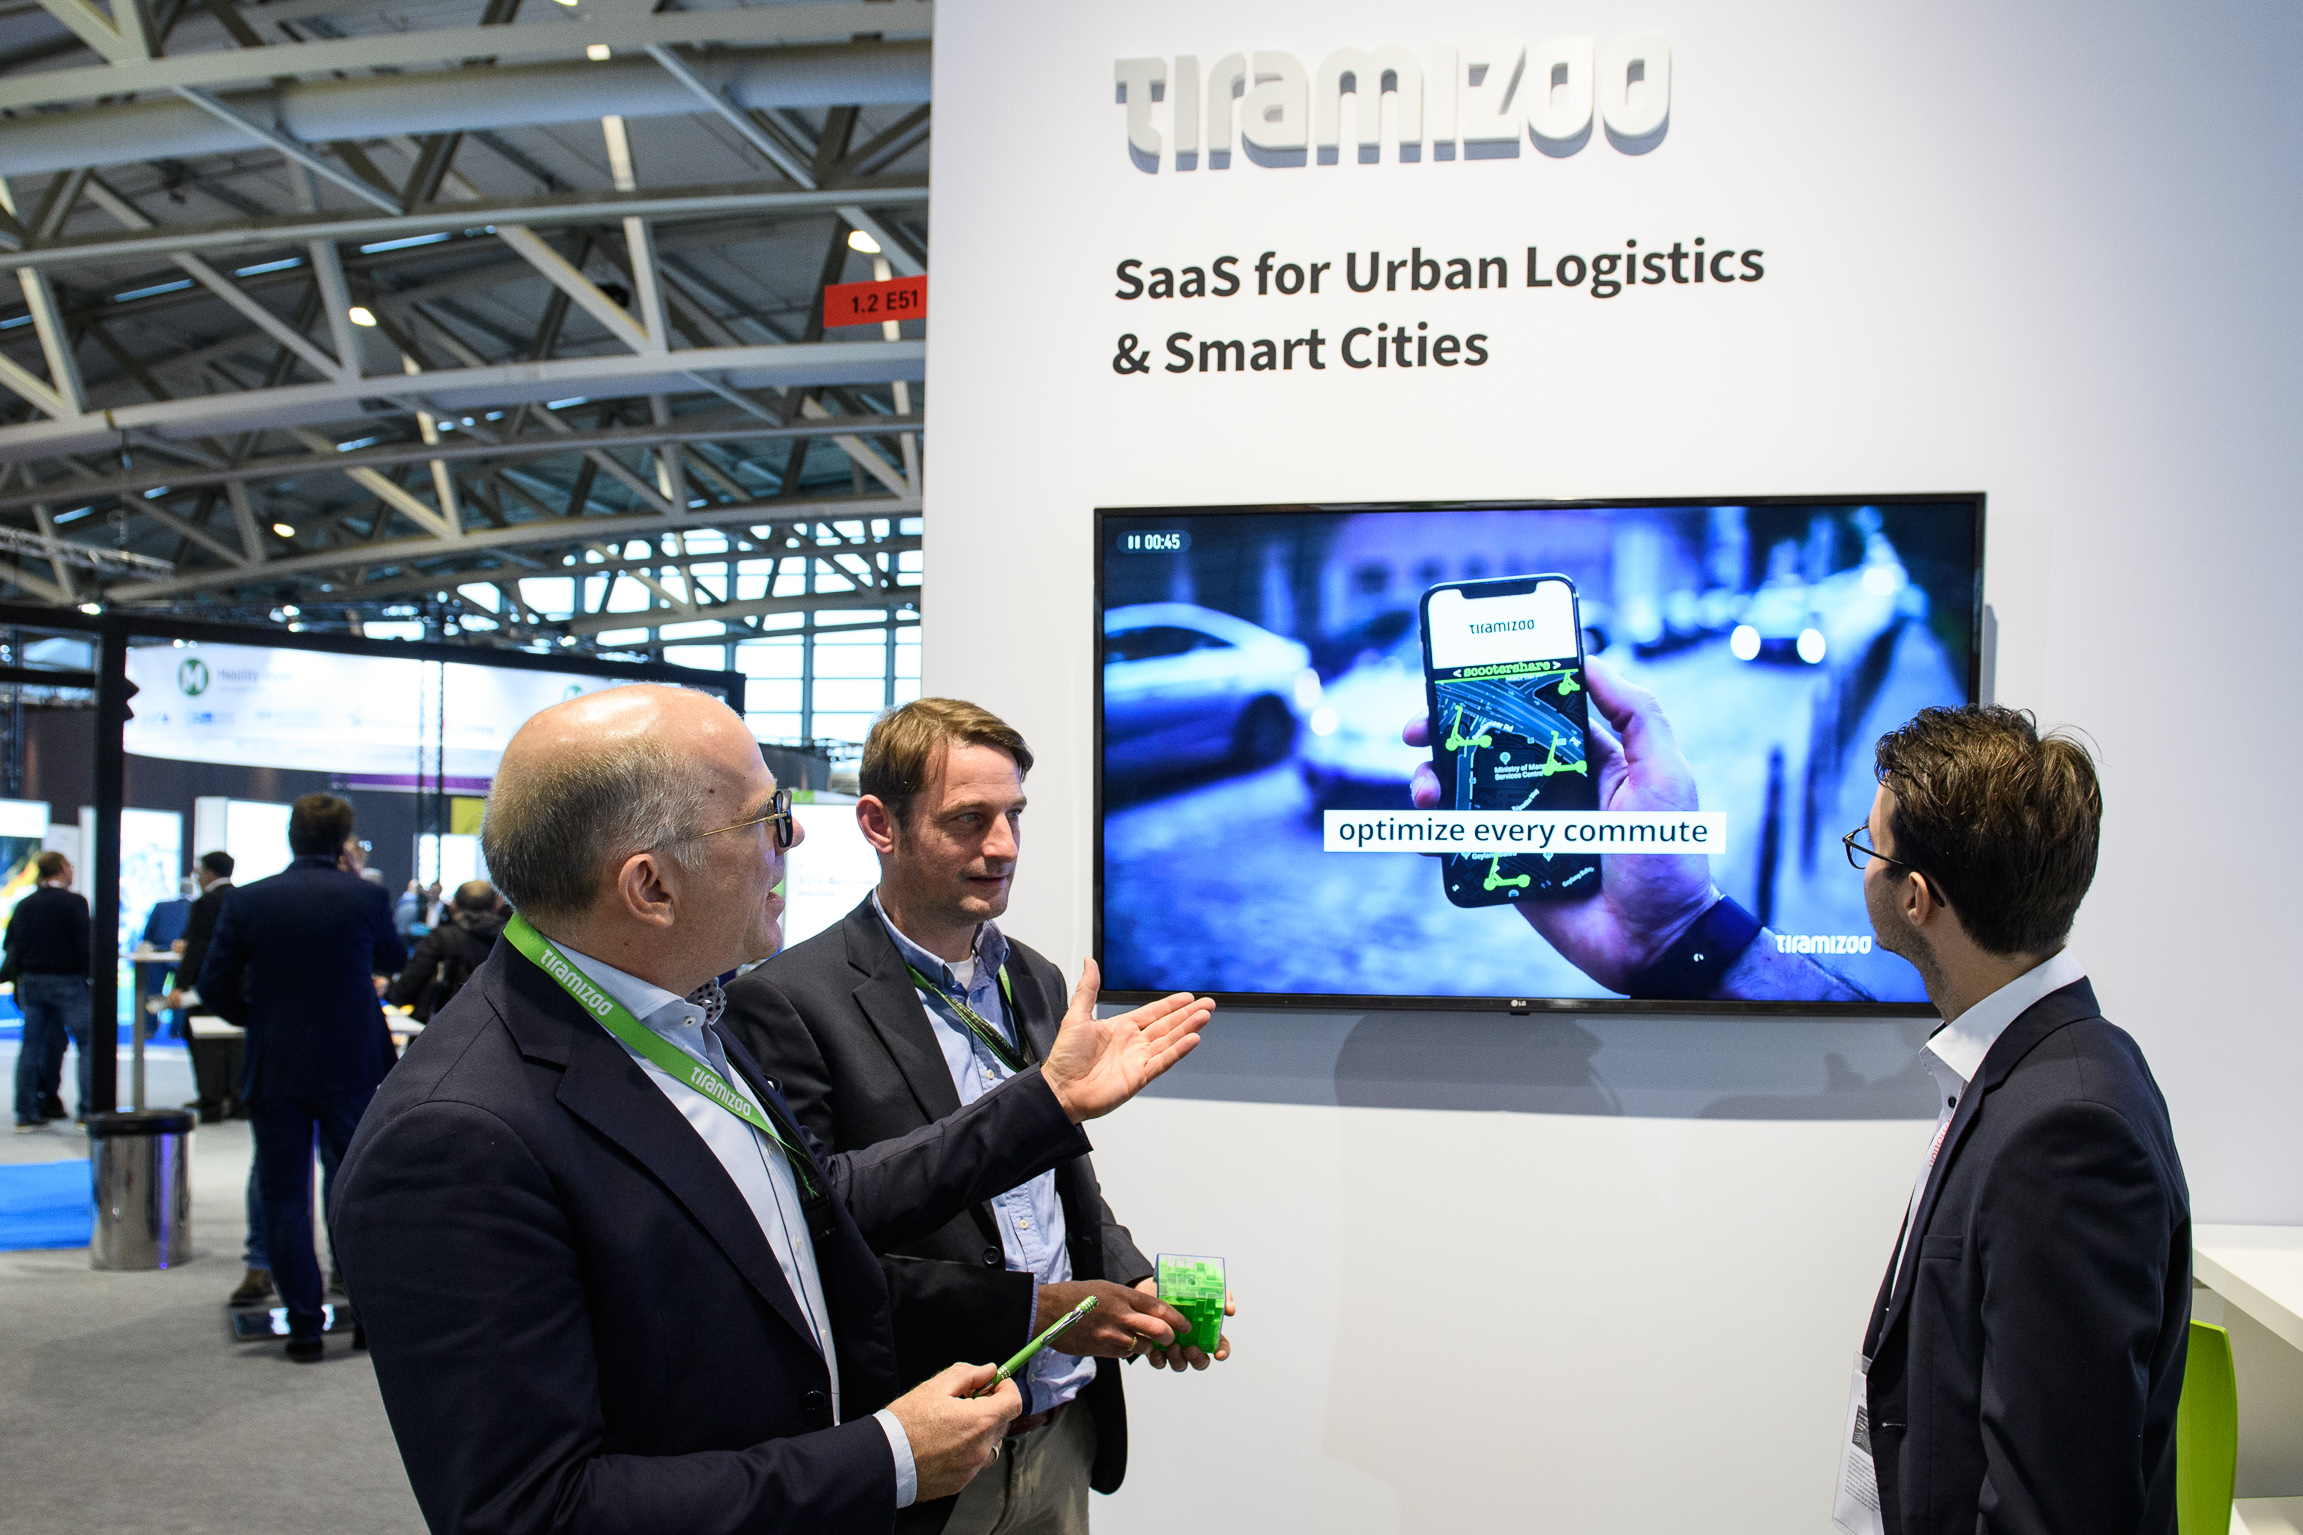 SaaS für urbane Logistik + Smart Cities / SaaS for urban logistics + smart cities